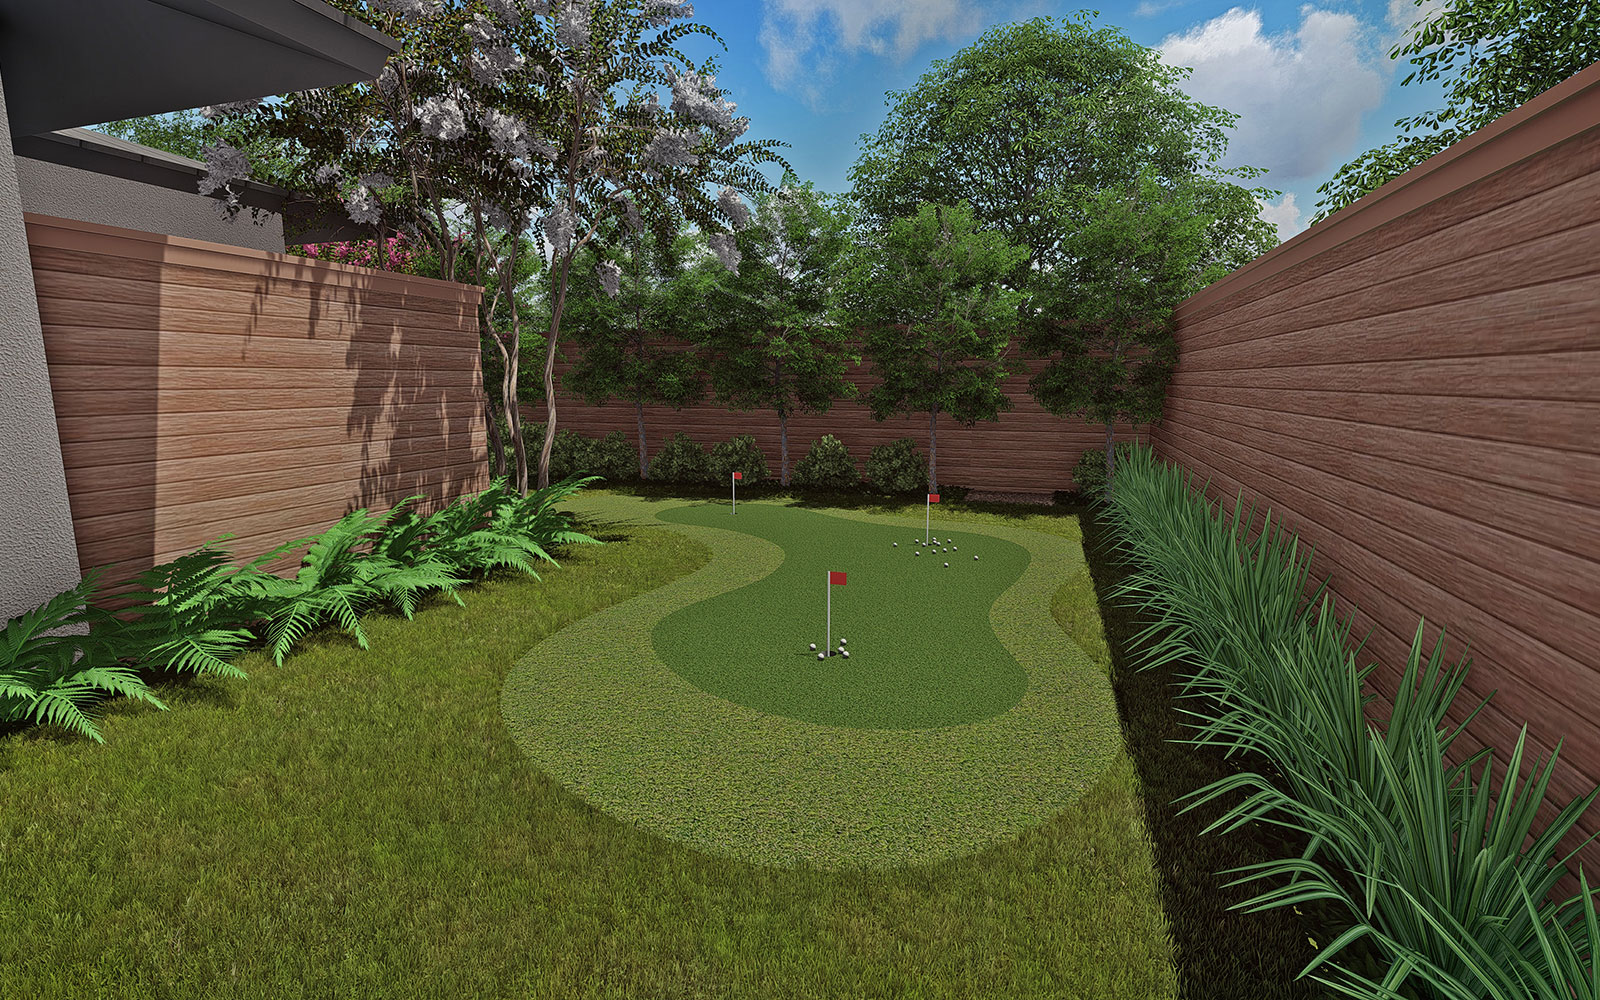 PUTTING GREEN & SIDE YARD